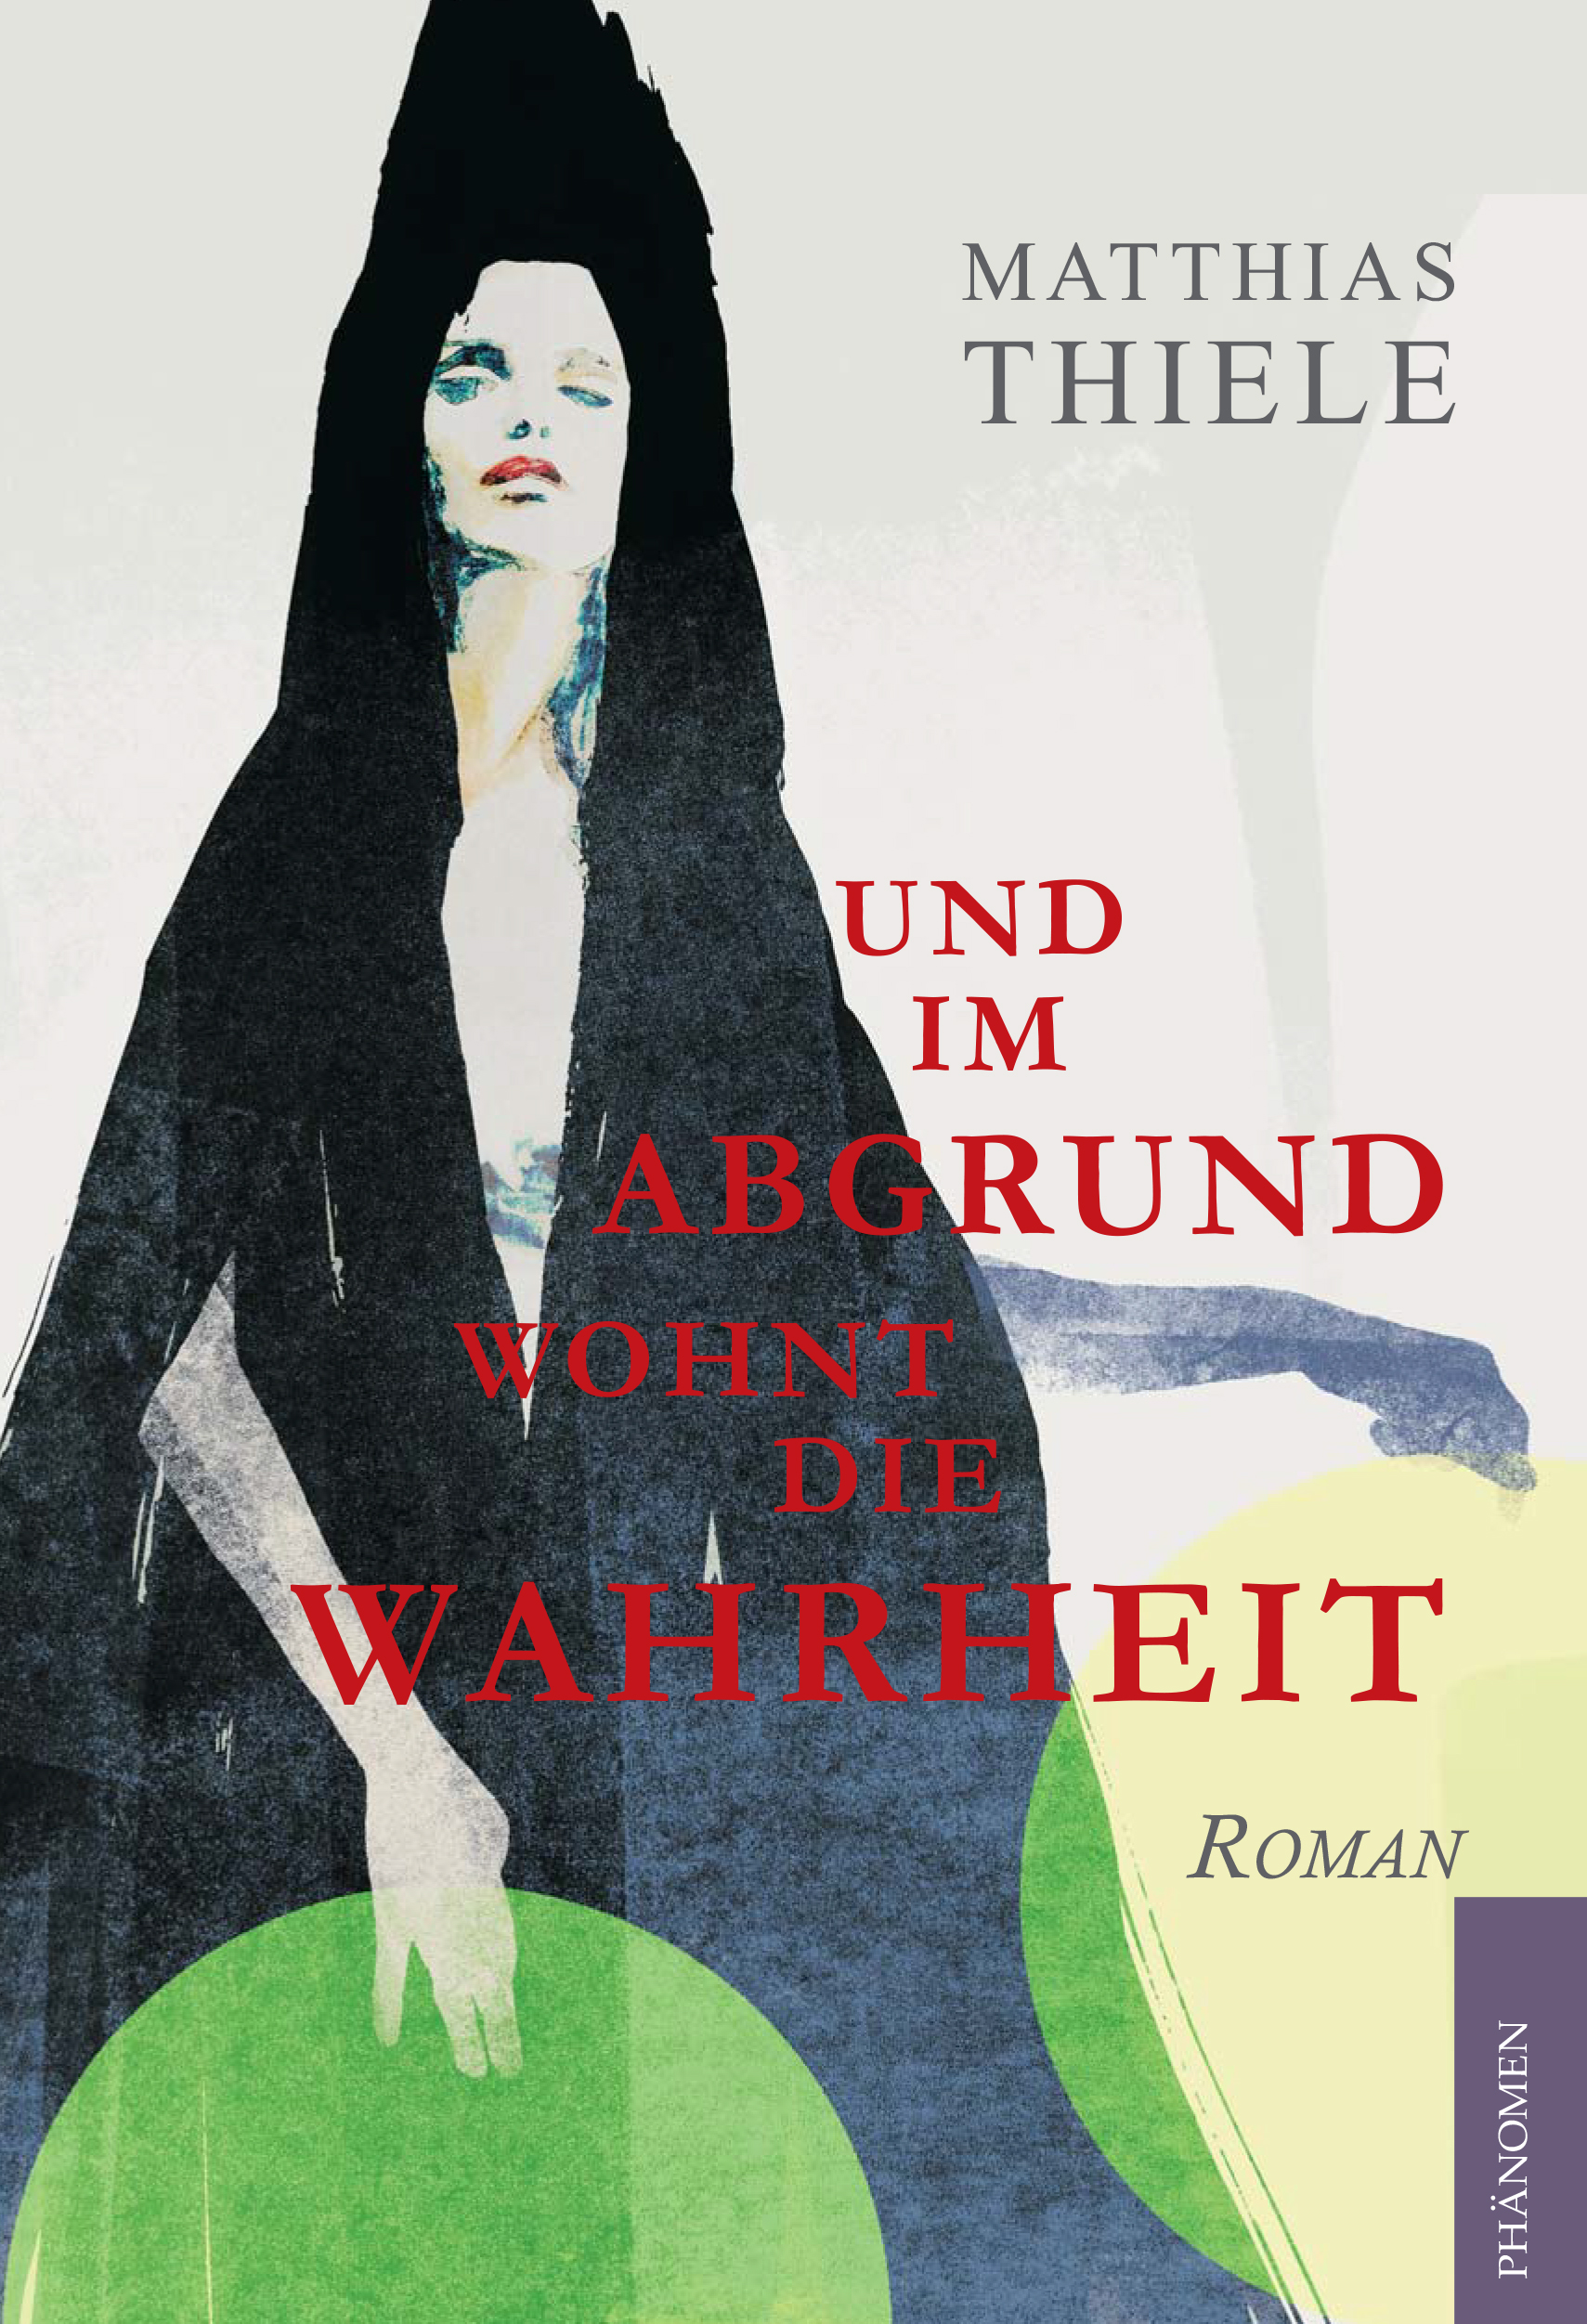 Thiele_Cover_1.FH11